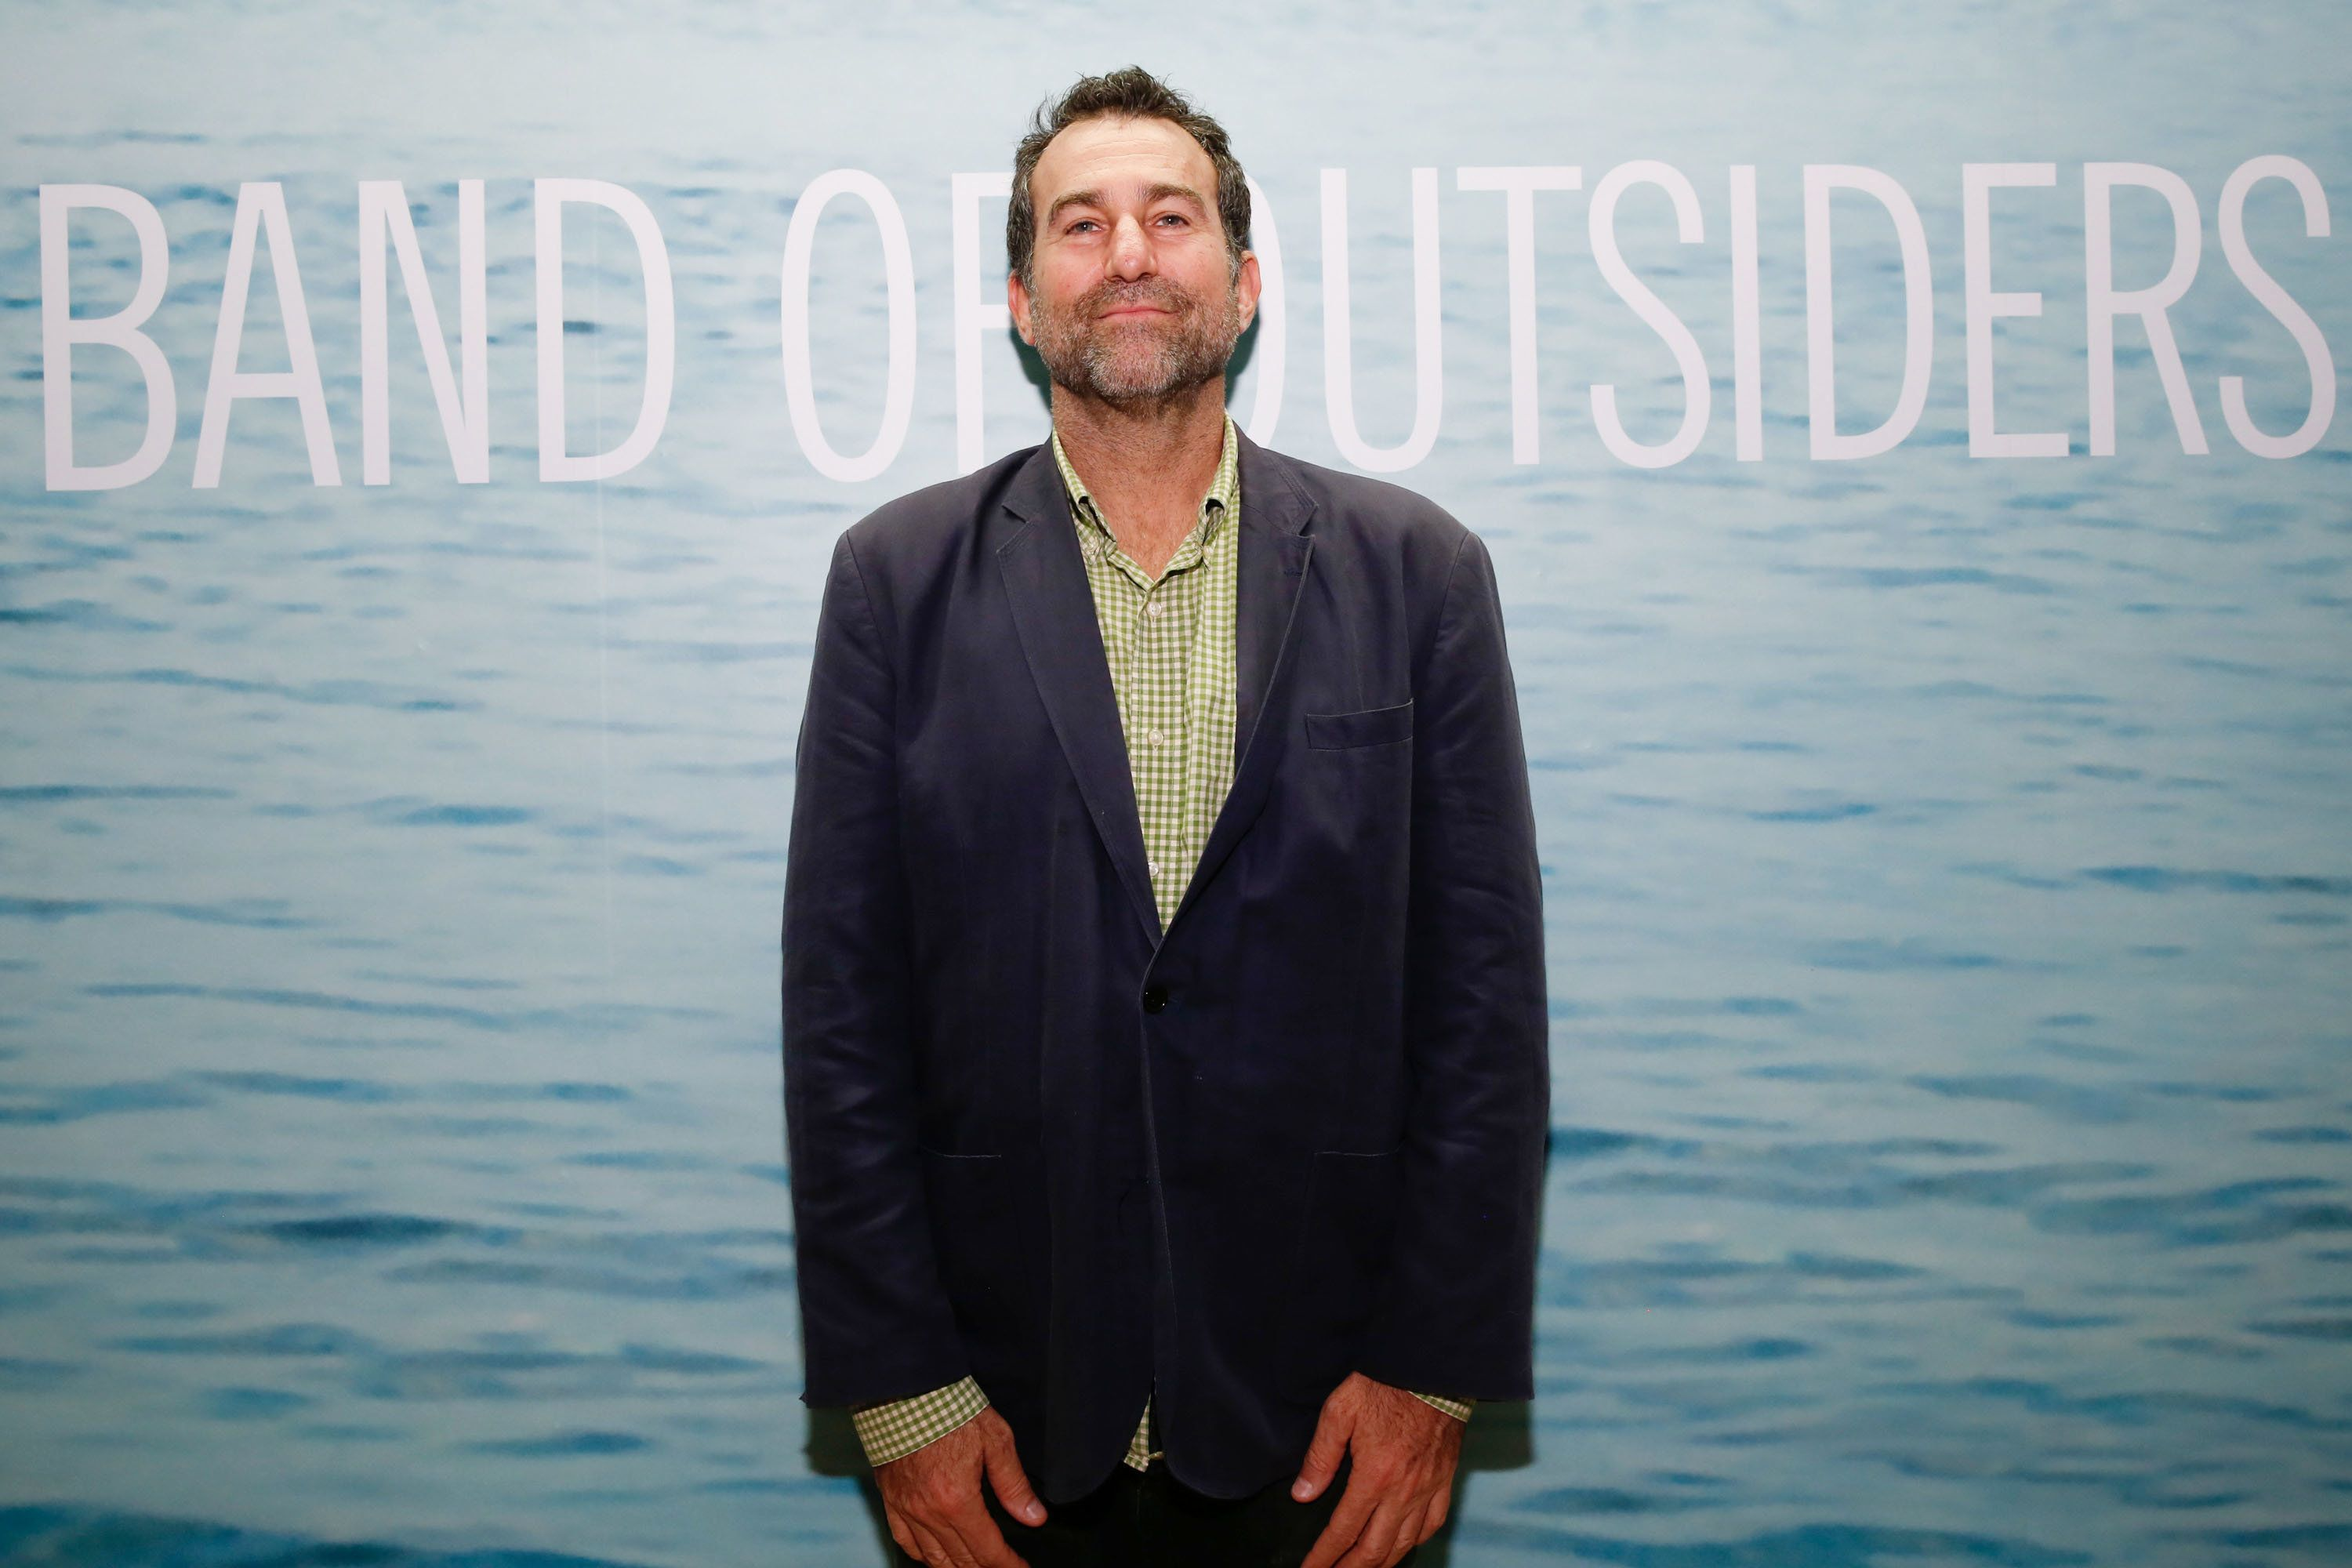 NEW YORK, NY - OCTOBER 07:  Restaurateur Ken Friedman attends the Band of Outsiders and Bon Appetit Magazine celebration of the opening of Milk Bar Soho at the Band of Outsider's Soho store on October 7, 2014 in New York City.  (Photo by JP Yim/Getty Images for Band of Outsiders)